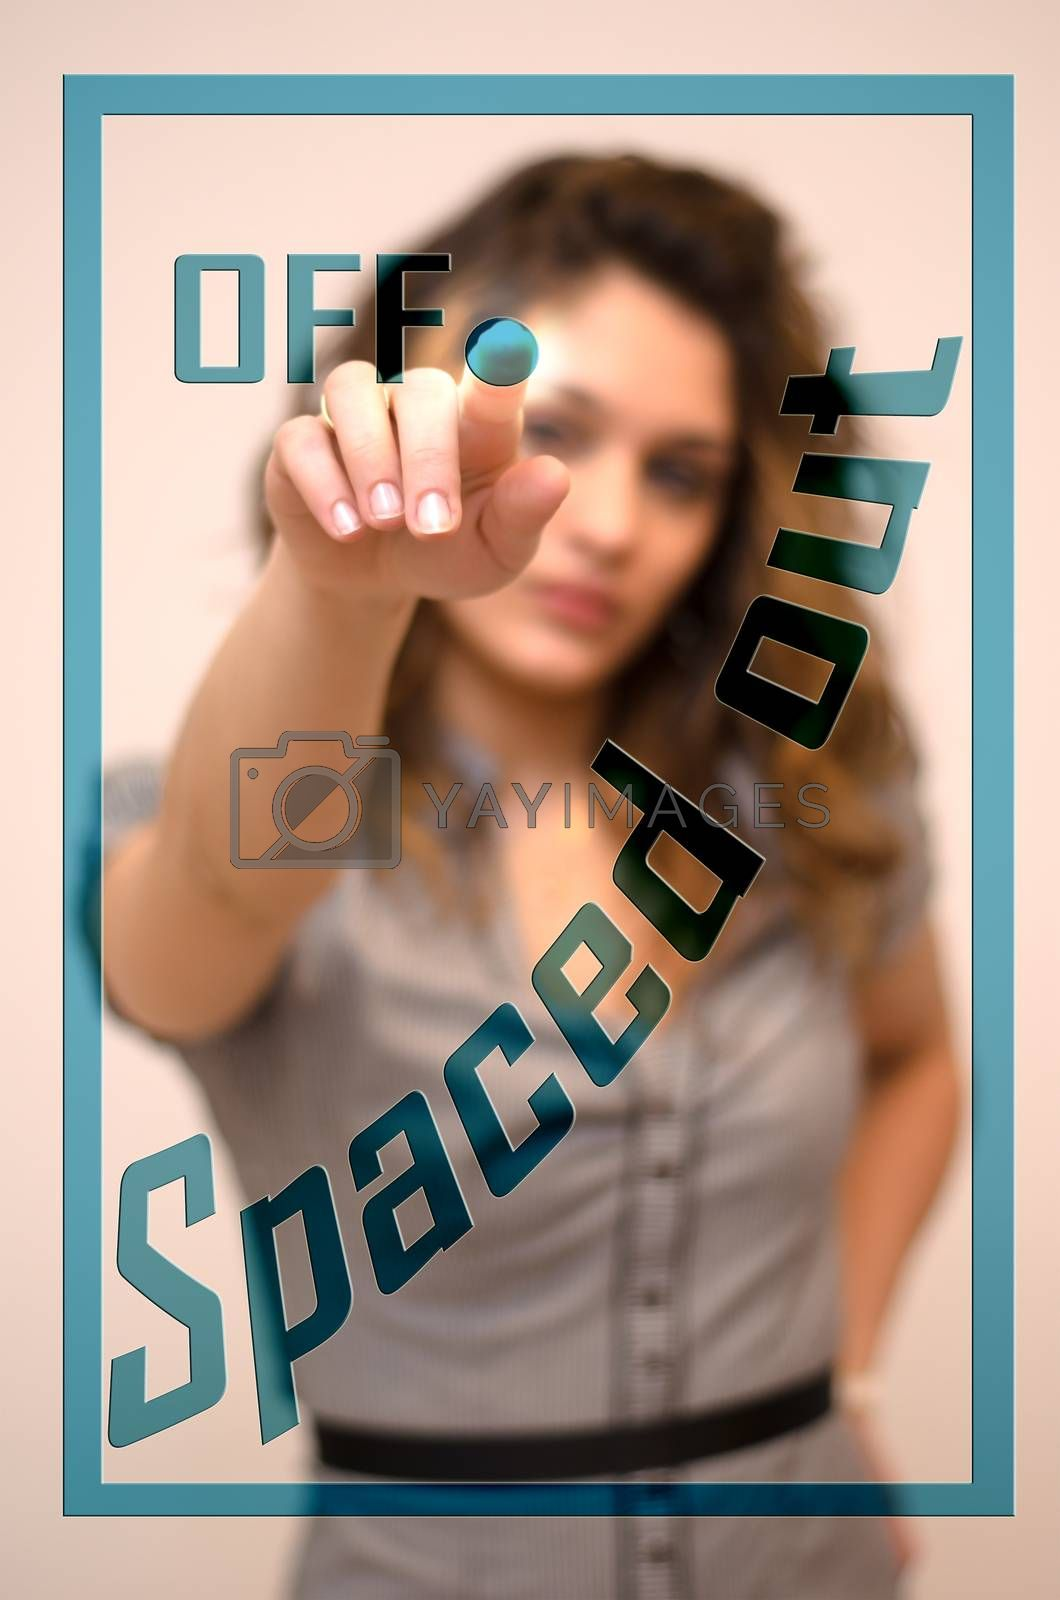 Royalty free image of woman turning off Spaced out on panel by vepar5